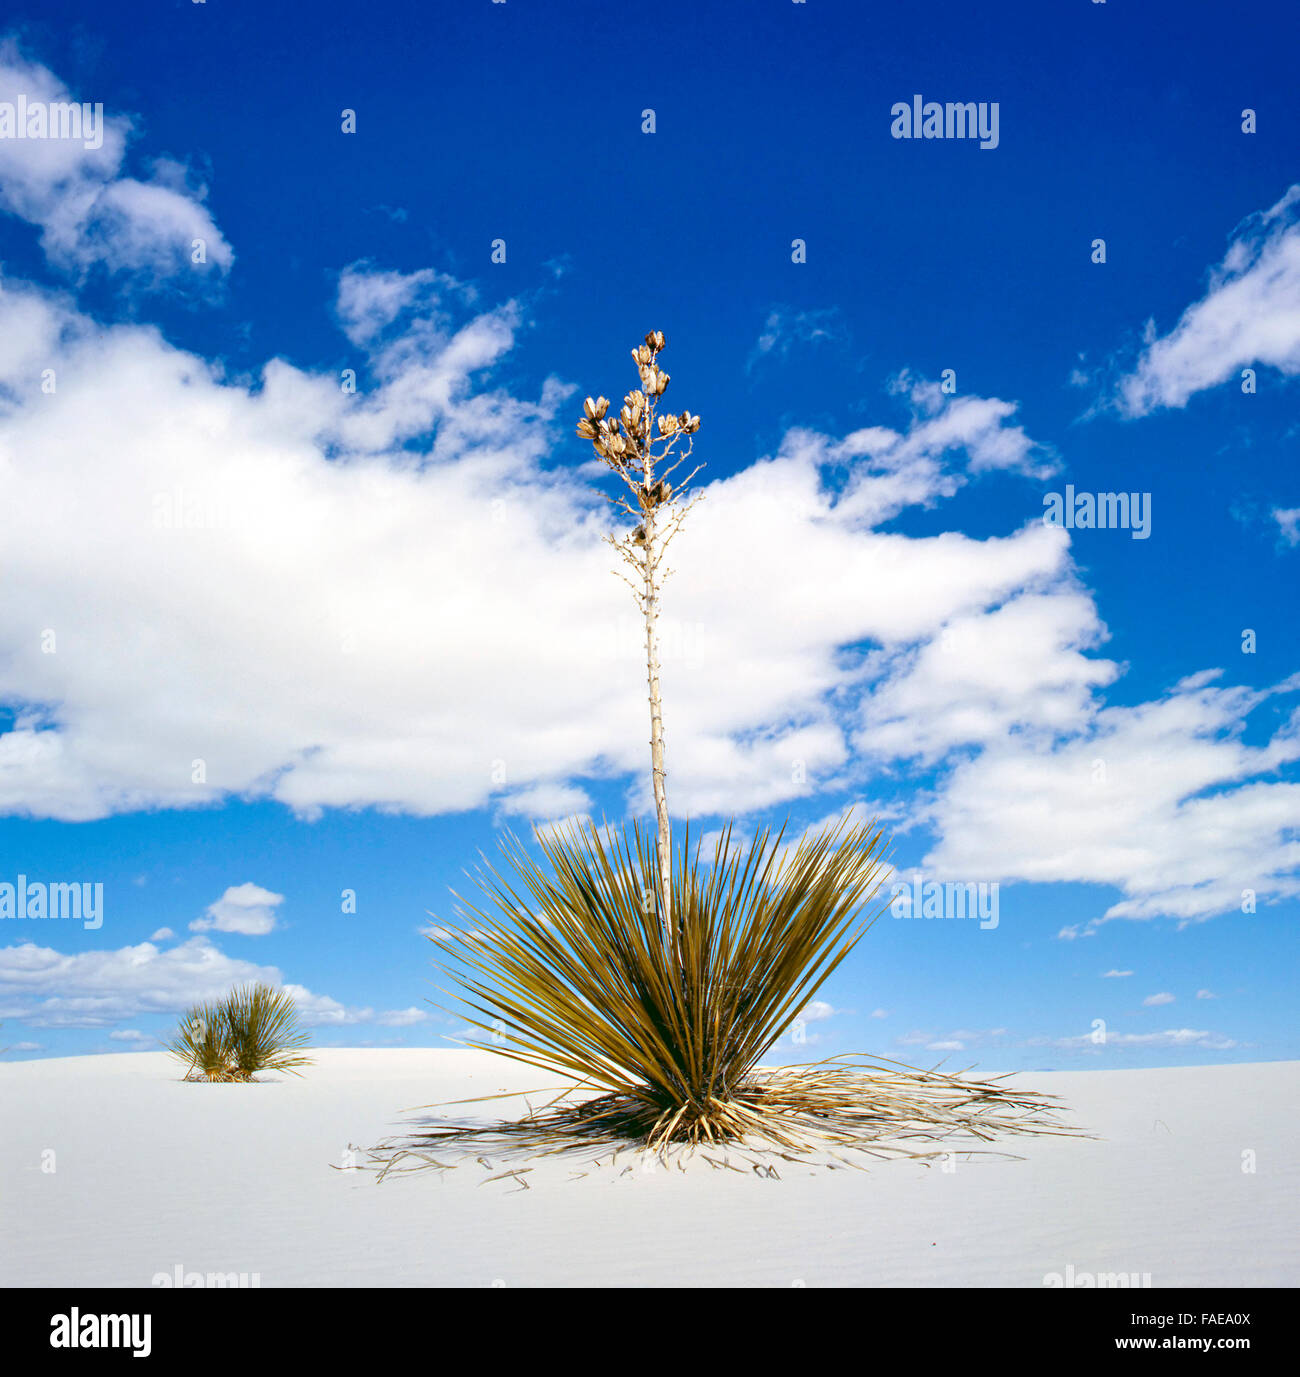 White Sands National Monument, New Mexico, USA with Yucca - Stock Image